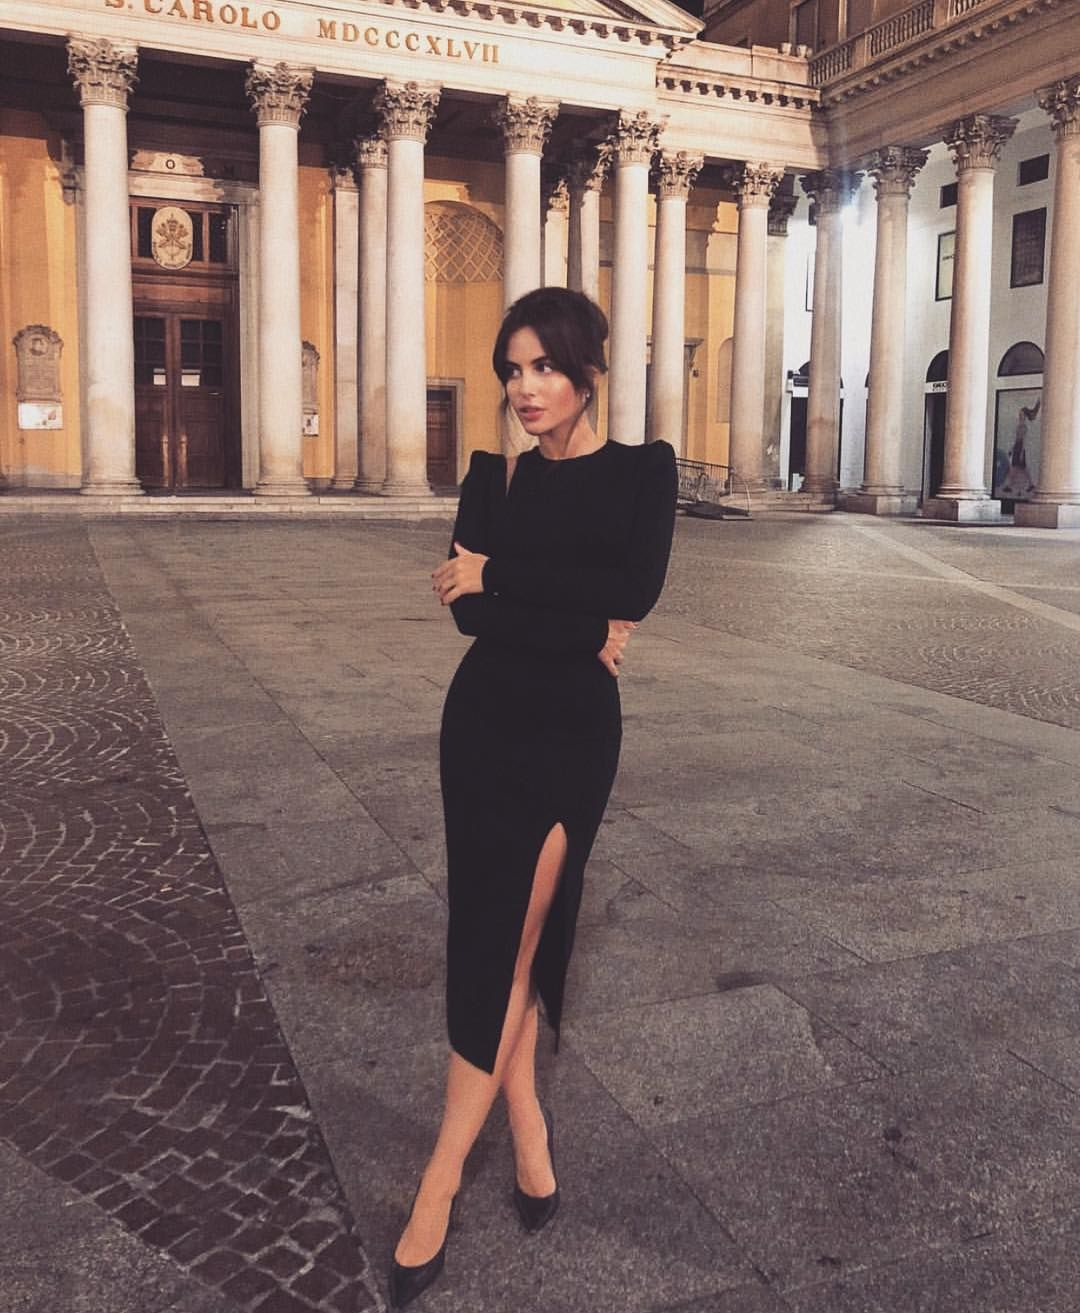 Doses Of Style On Instagram Black Dress Majorstreetstyle Classy Dress Classy Outfits Fashion [ 1313 x 1080 Pixel ]